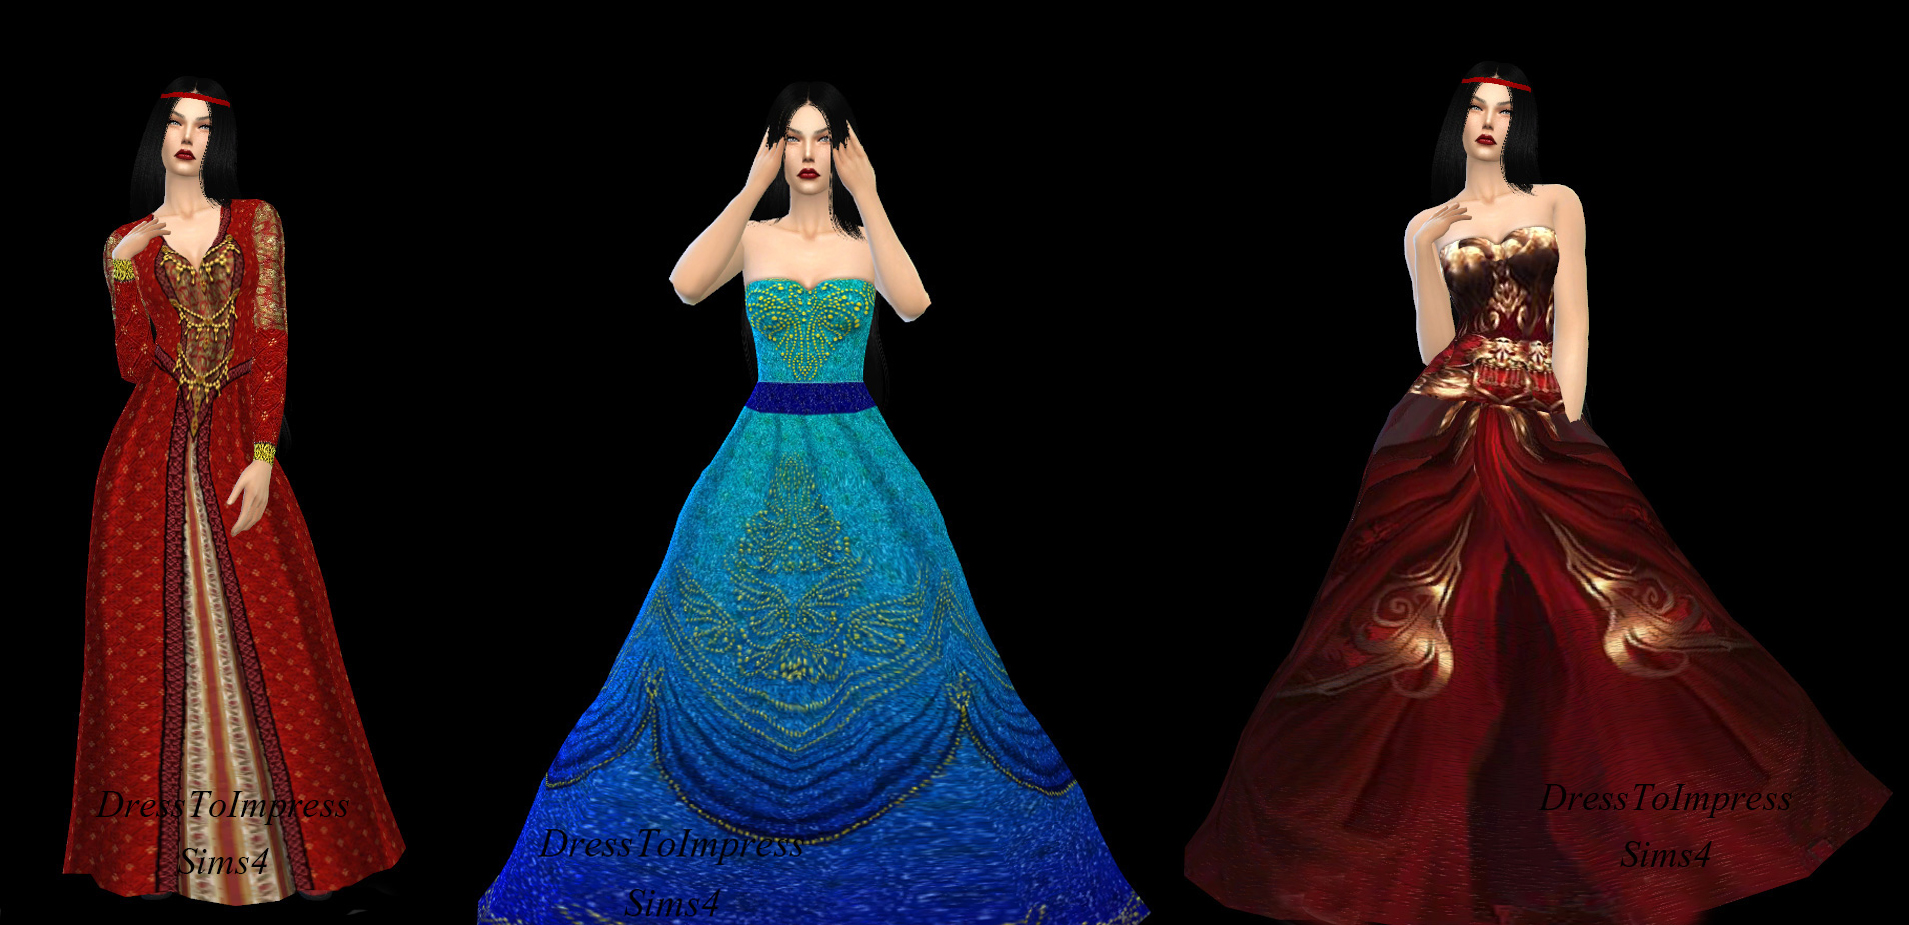 Fantasy Dresses by Itsdresstoimpresssims4